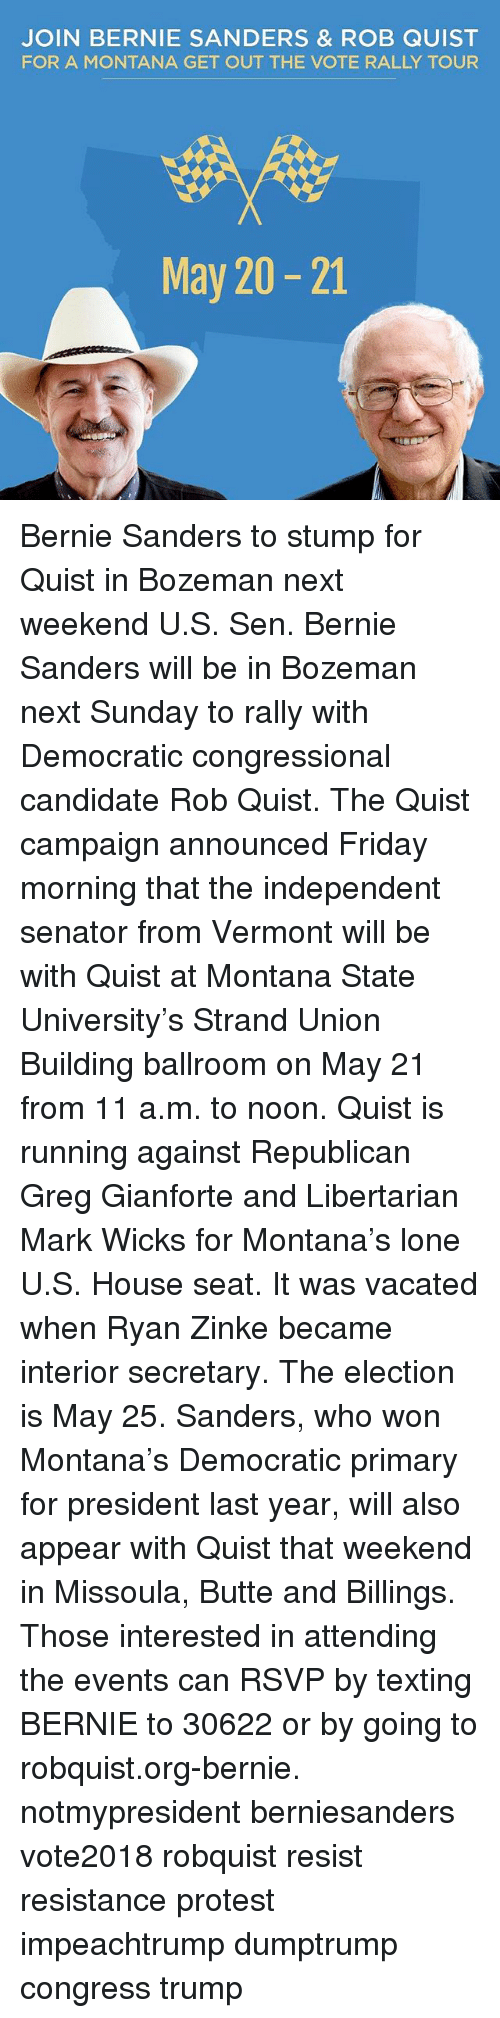 Join Bernie Sanders & Rob Quist For A Montana Get Out The Vote Rally Tour  May 2021 Bernie Sanders To Stump For Quist In Bozeman Next Weekend Us Sen  Bernie